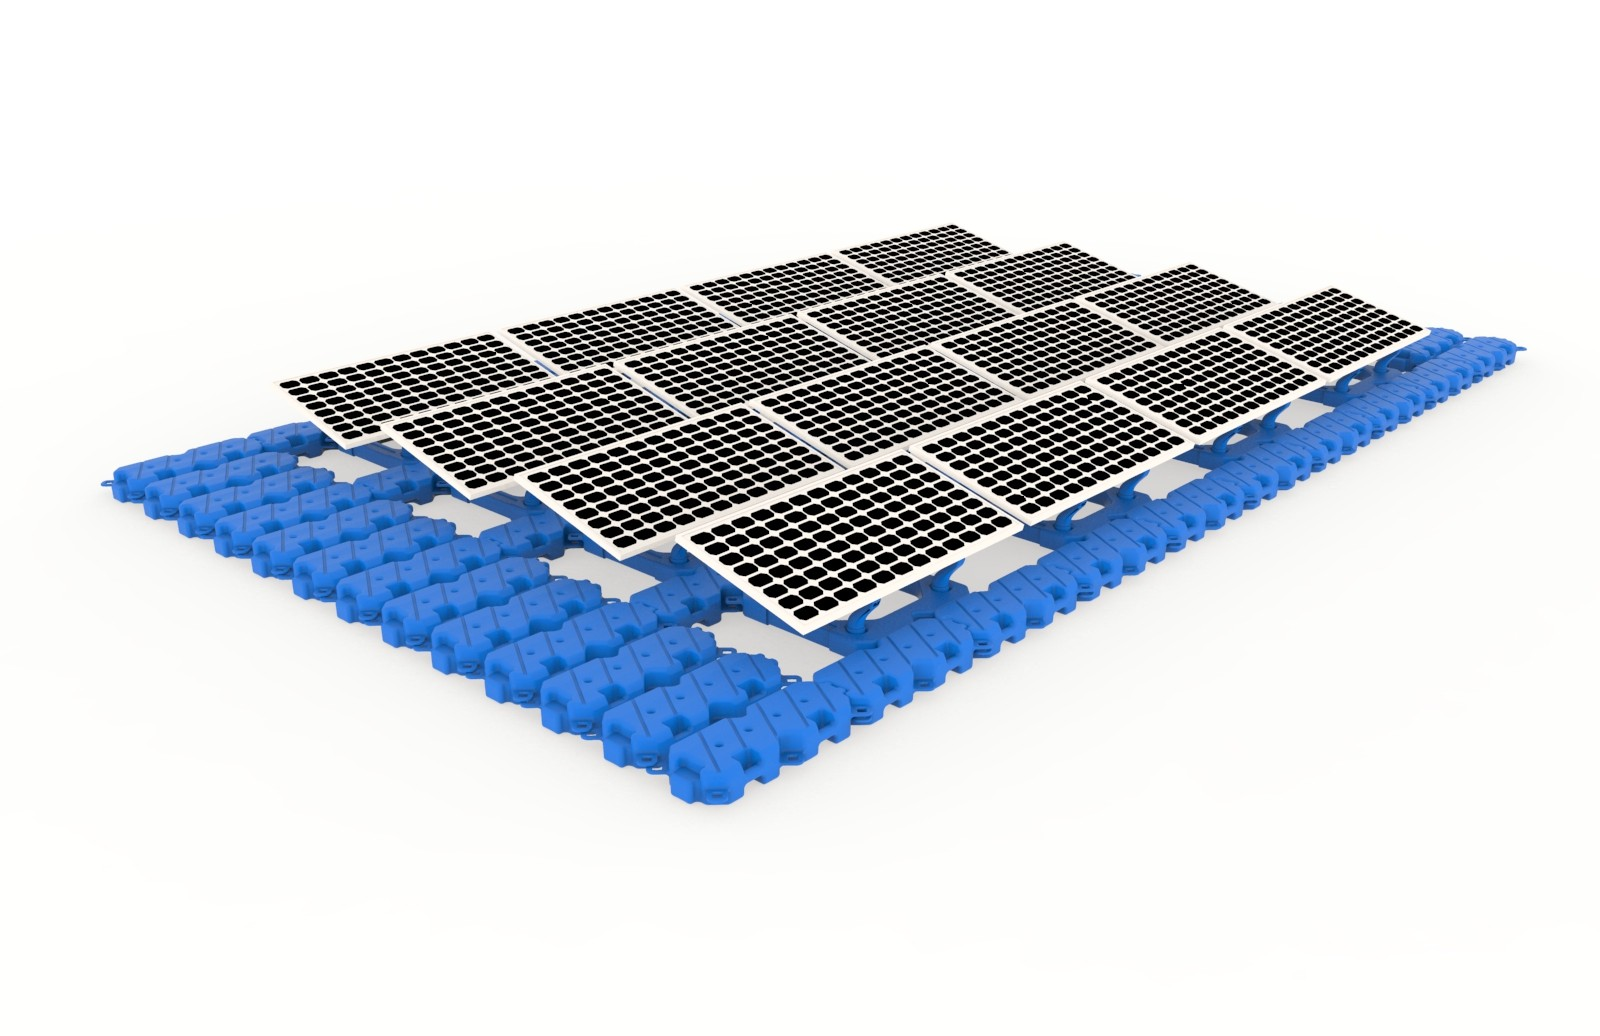 Floating Solar Structure System Manufacturers, Floating Solar Structure System Factory, Supply Floating Solar Structure System